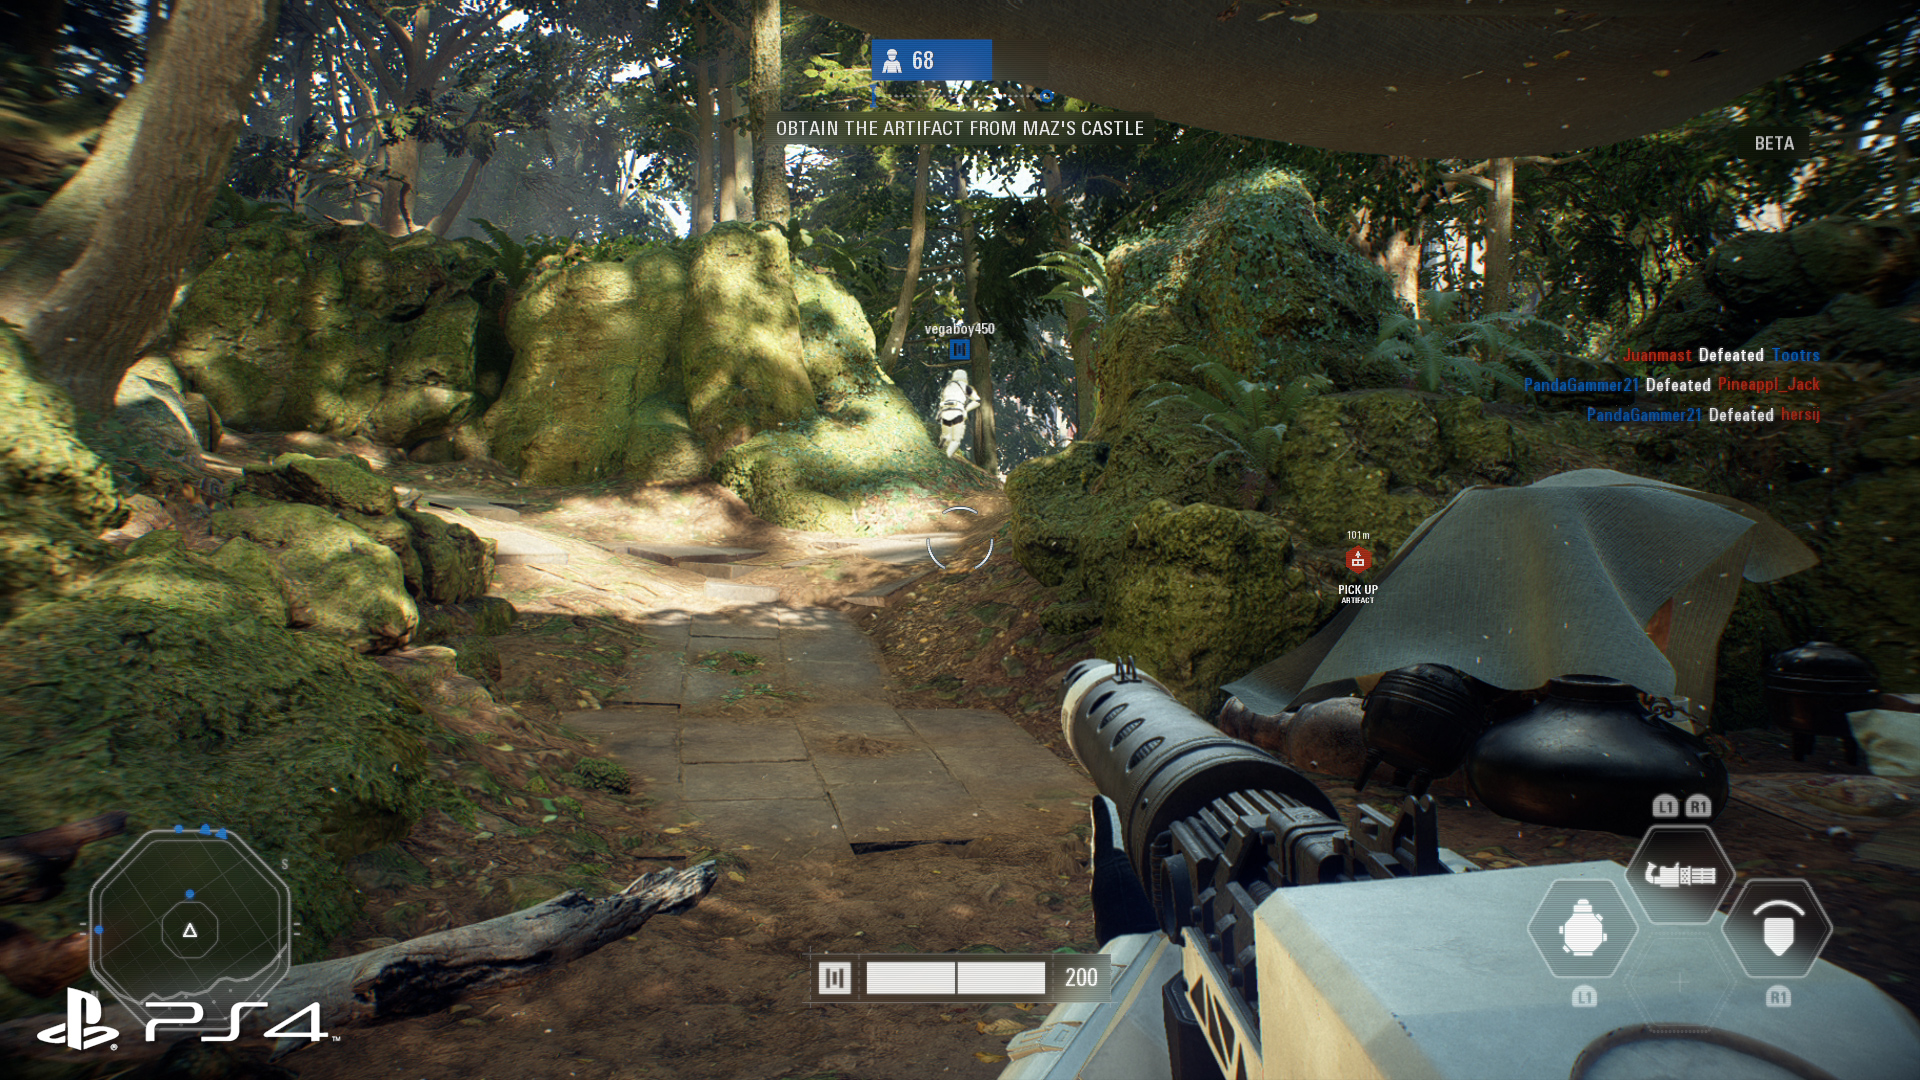 How Star Wars Battlefront 2s Stunning Tech Scales Across Consoles